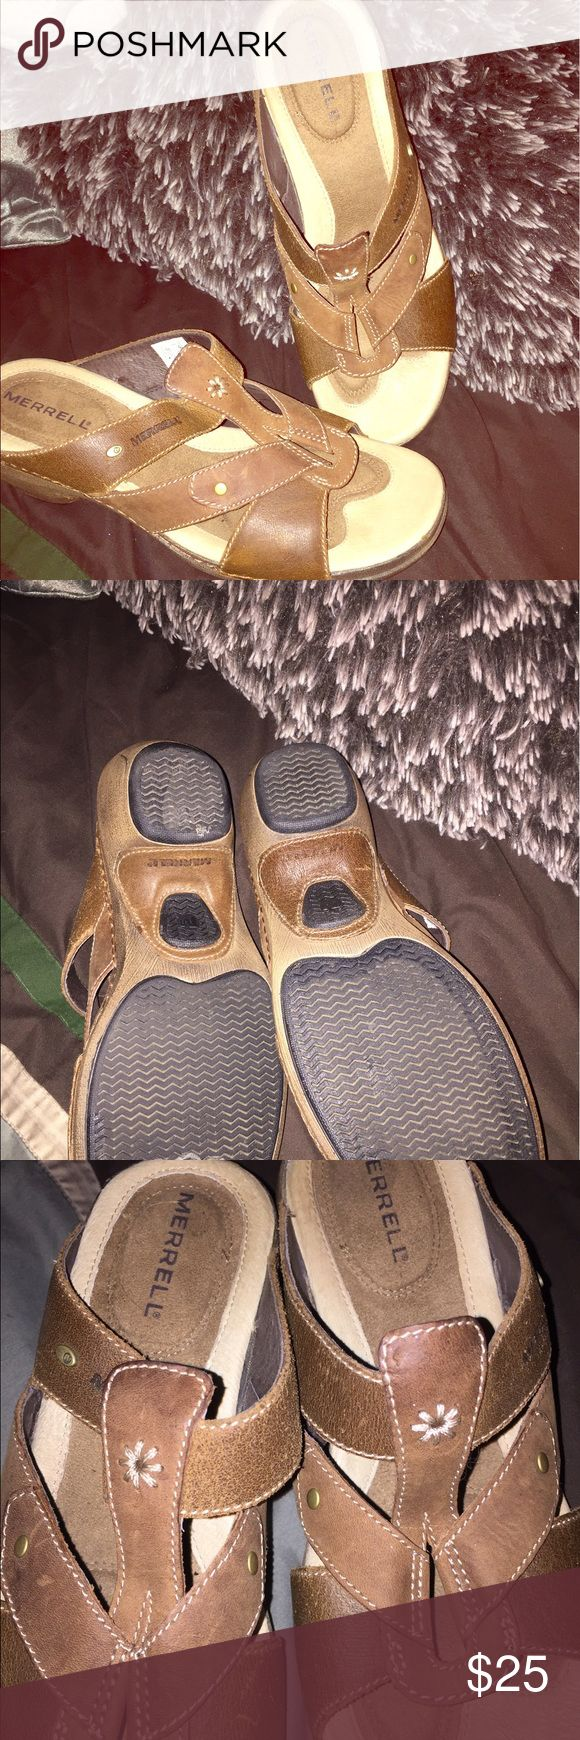 Merrell sandals Great shape and so comfortable. Merrell Shoes Sandals